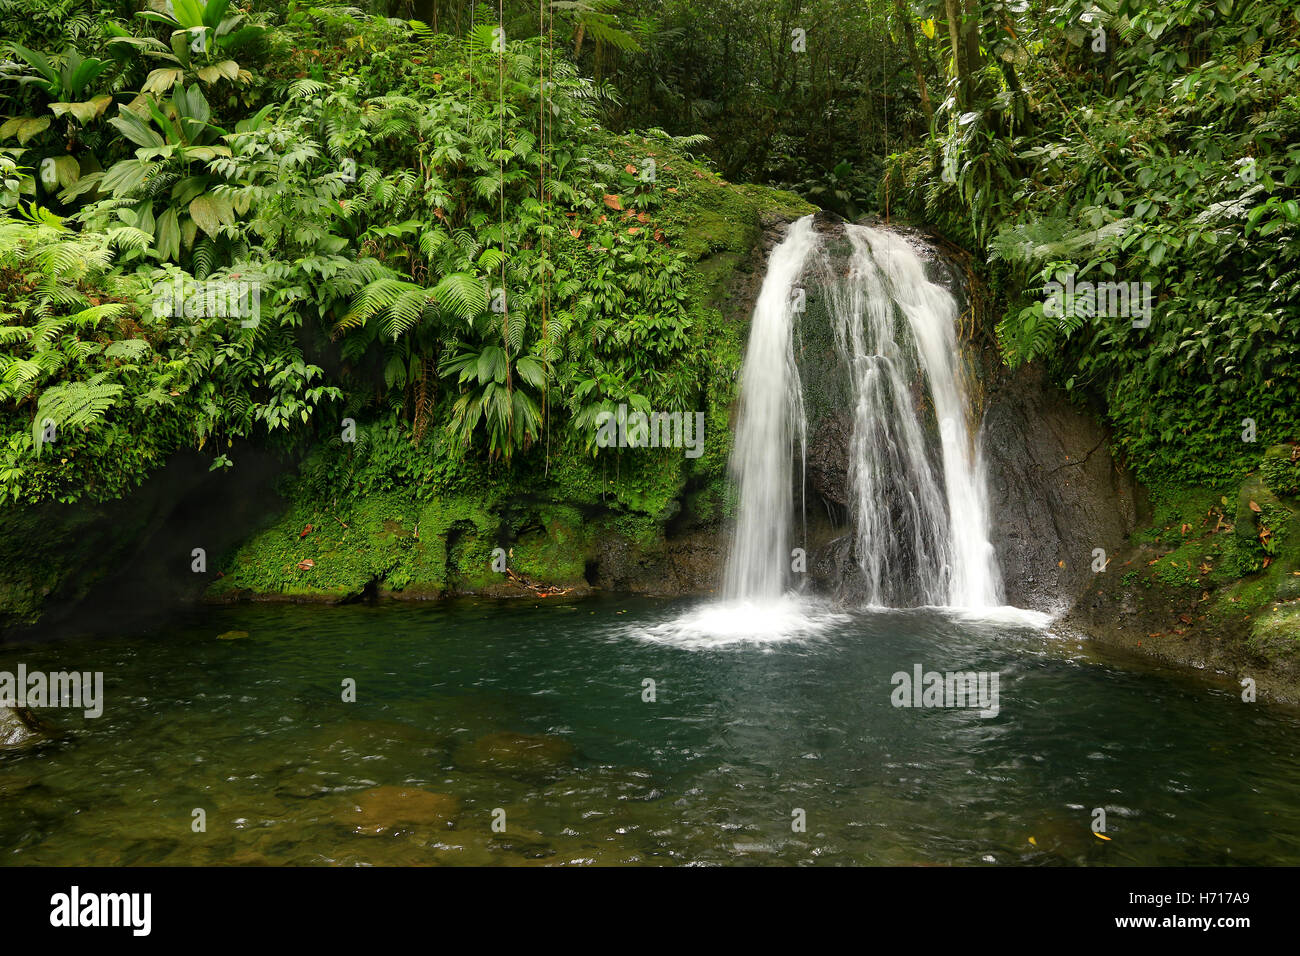 Beautiful waterfall in a rainforest. Cascades aux Ecrevisses, Guadeloupe, Caribbean Islands, France - Stock Image